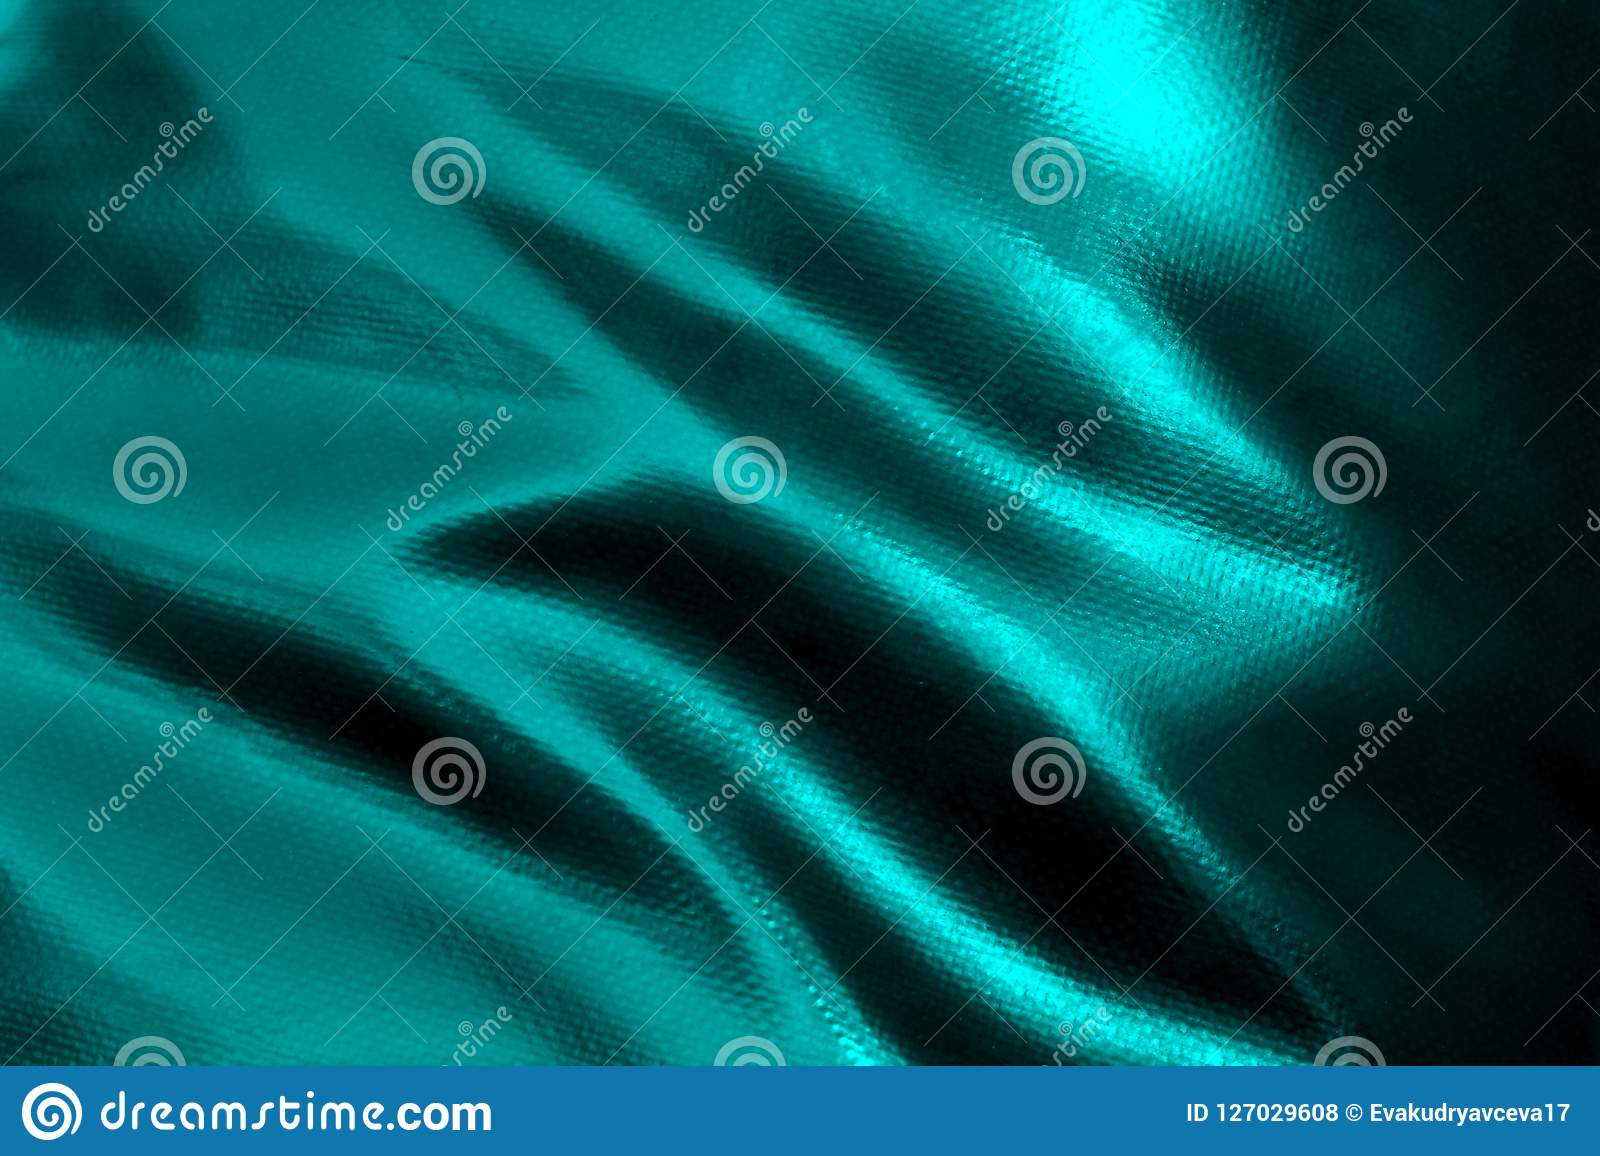 Texture Light Waves From Fabric Rough Leather Turquoise